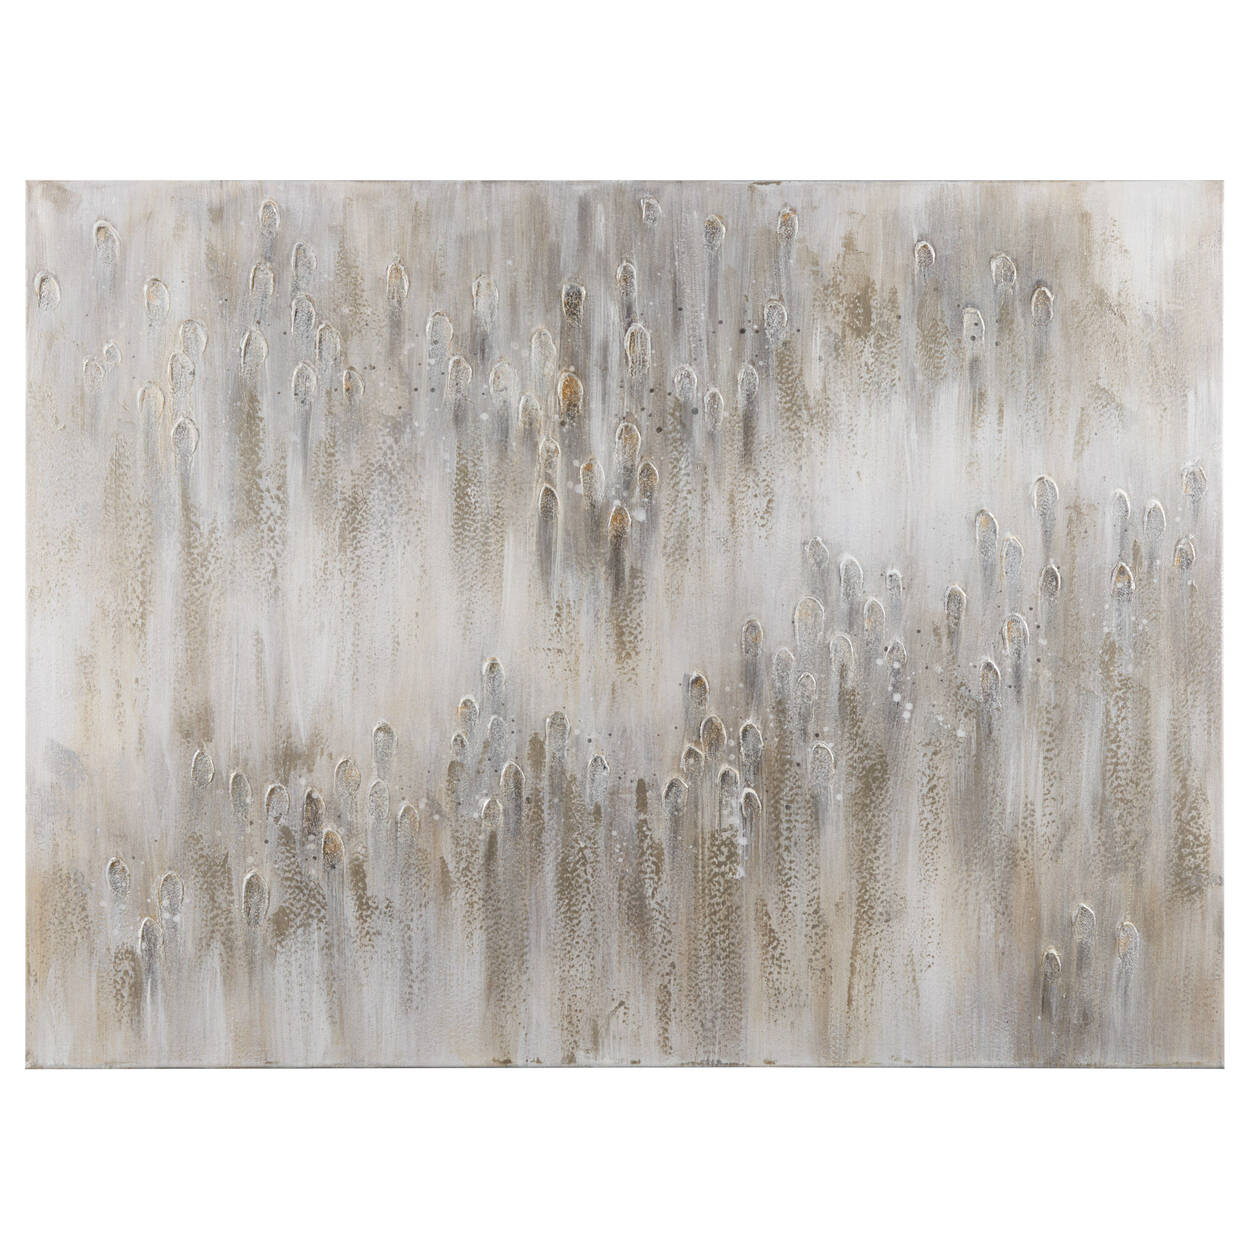 Abstract Oil Painted Canvas